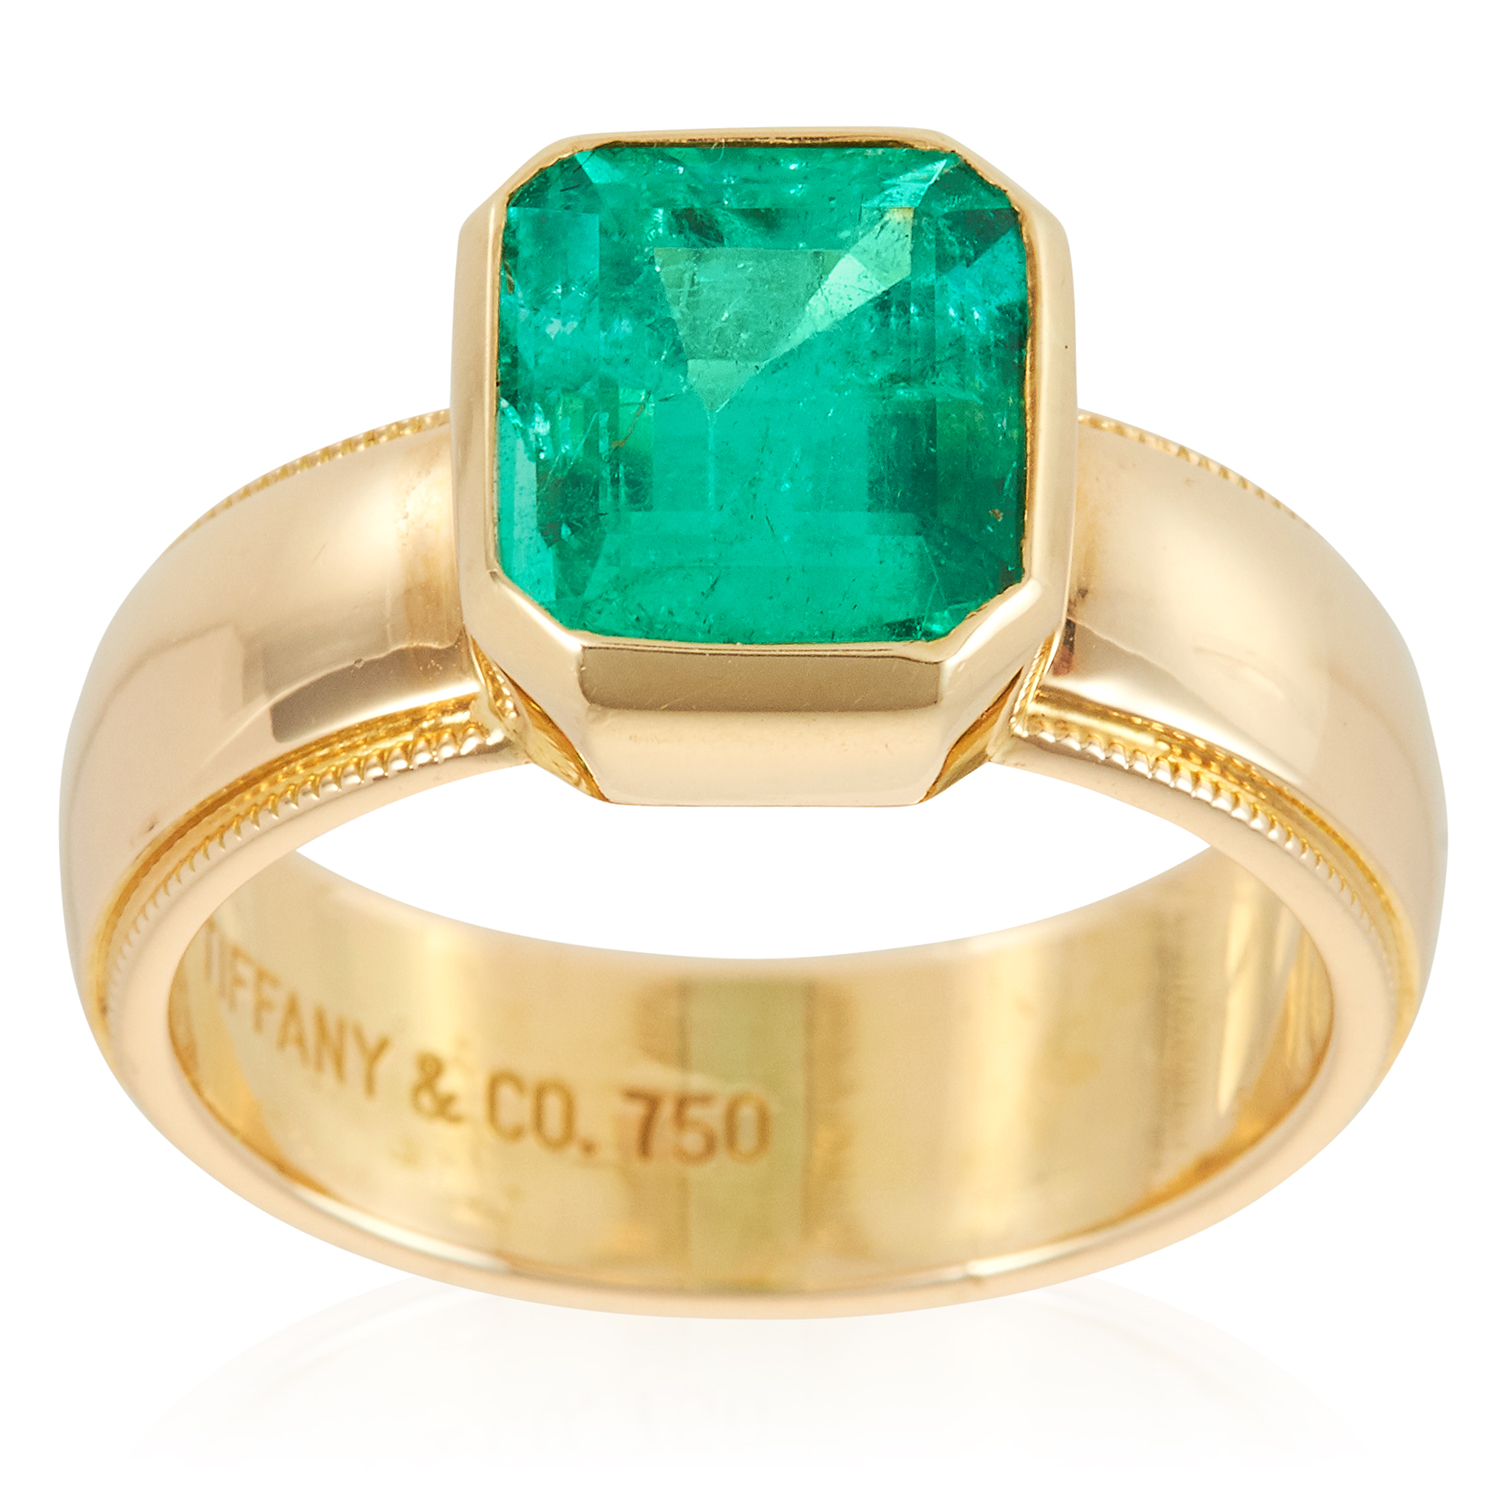 Los 14 - A 2.85 CARAT COLOMBIAN EMERALD RING, TIFFANY & CO in 18ct yellow gold, set with a step cut emerald